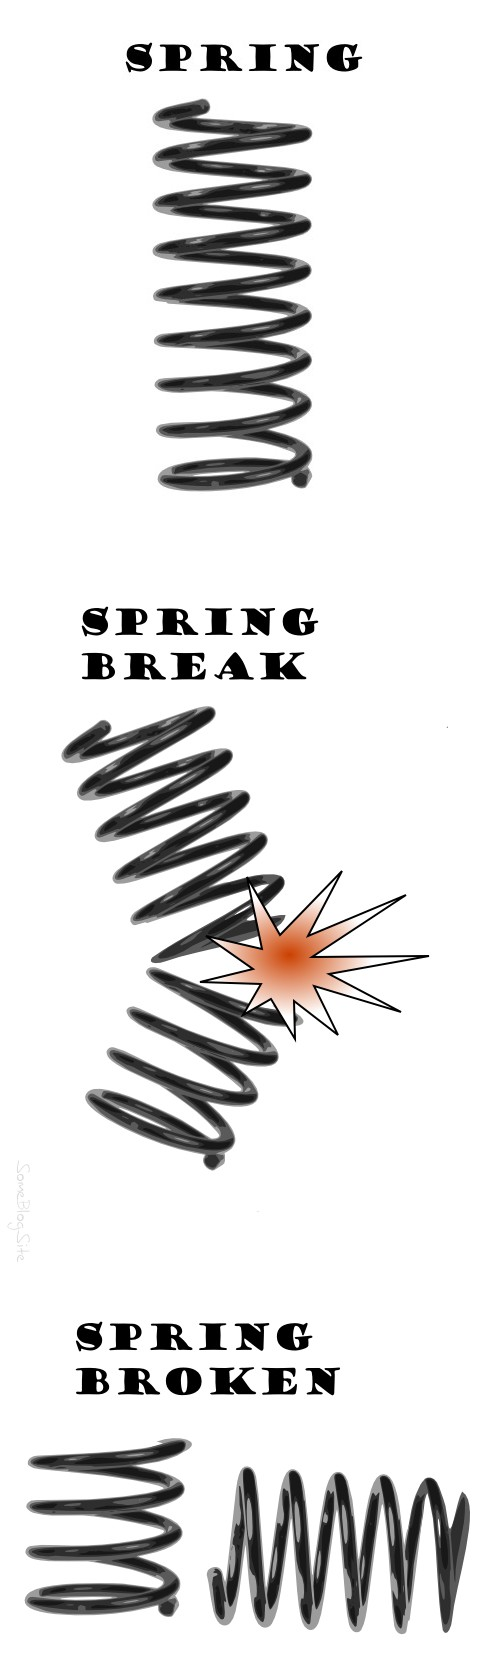 image of a spring breaking for spring break, then it is spring broken